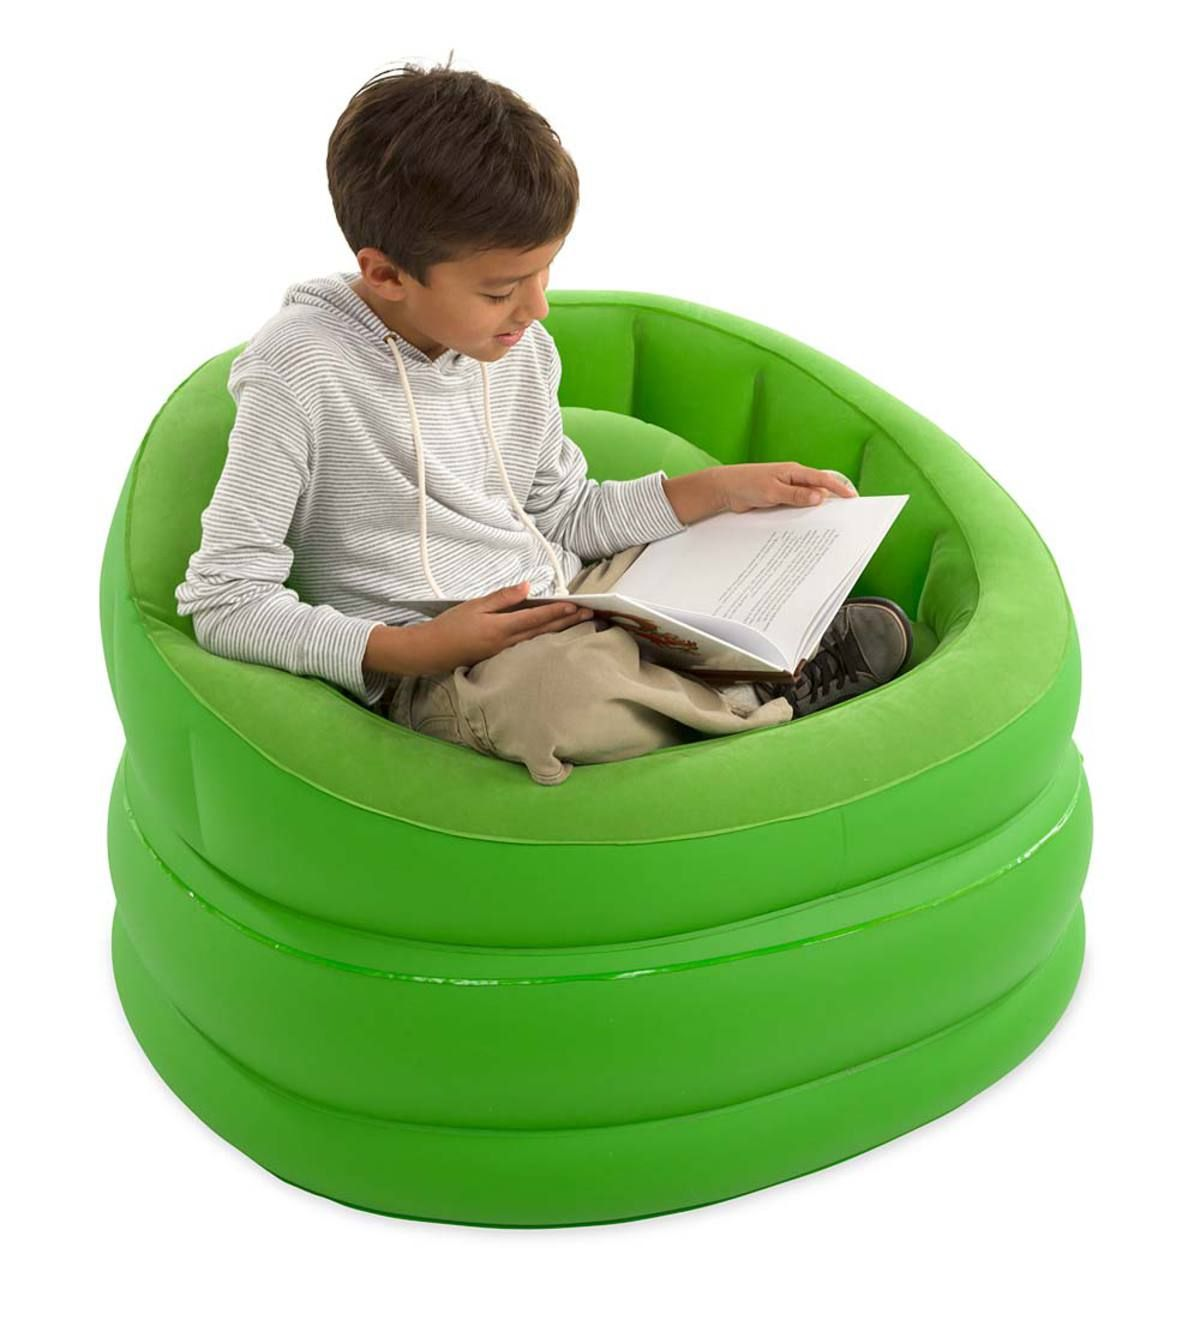 Inflatable Cafe Chair - Green (With images)  Cafe chairs, Chair